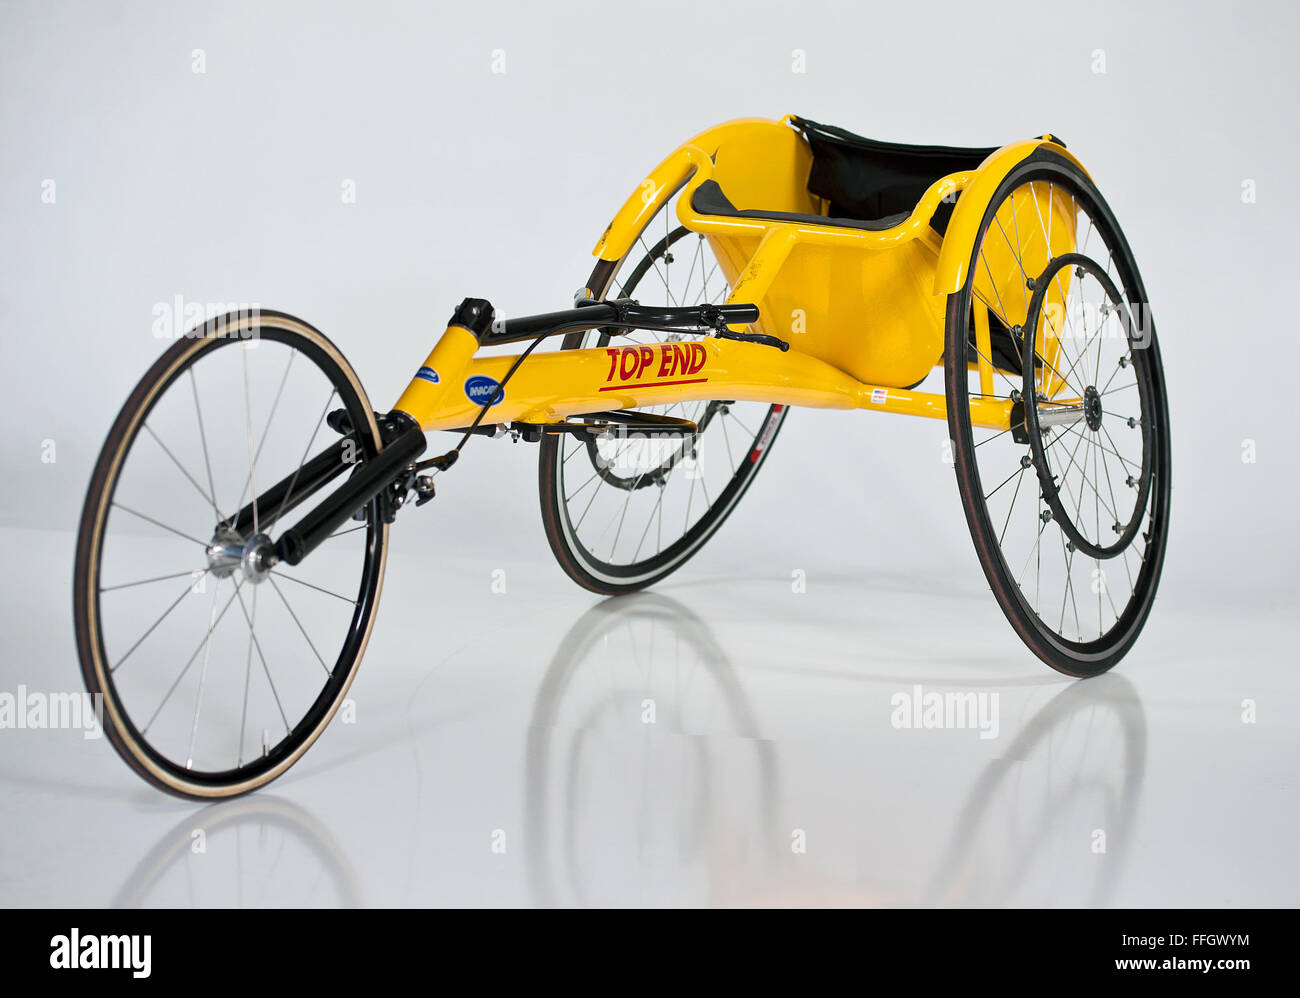 The handcycle is either arm-powered or arm-trunk powered. The rider can be in a kneeling position. The vehicle has - Stock Image